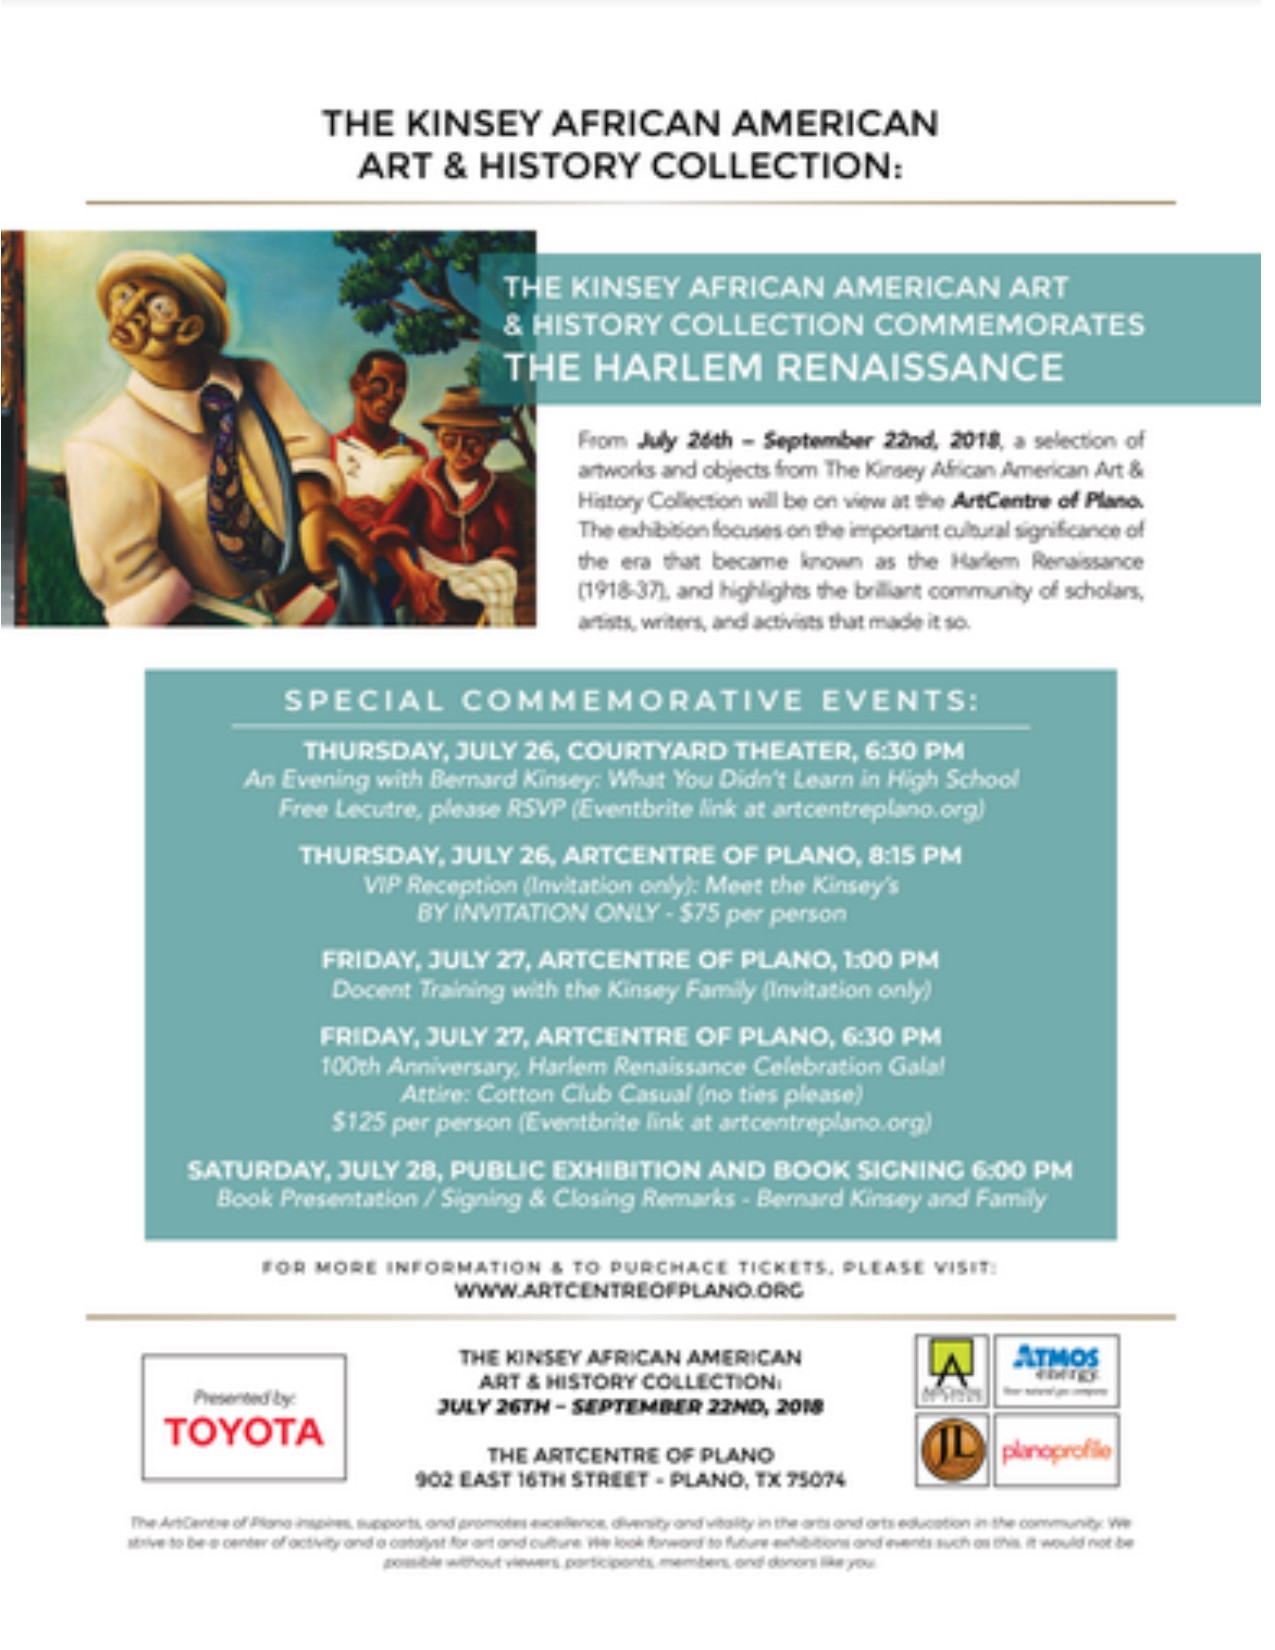 The Kinsey African American Art & History Collection Commemorates the Harlem Renaissance: 7/26-9/22